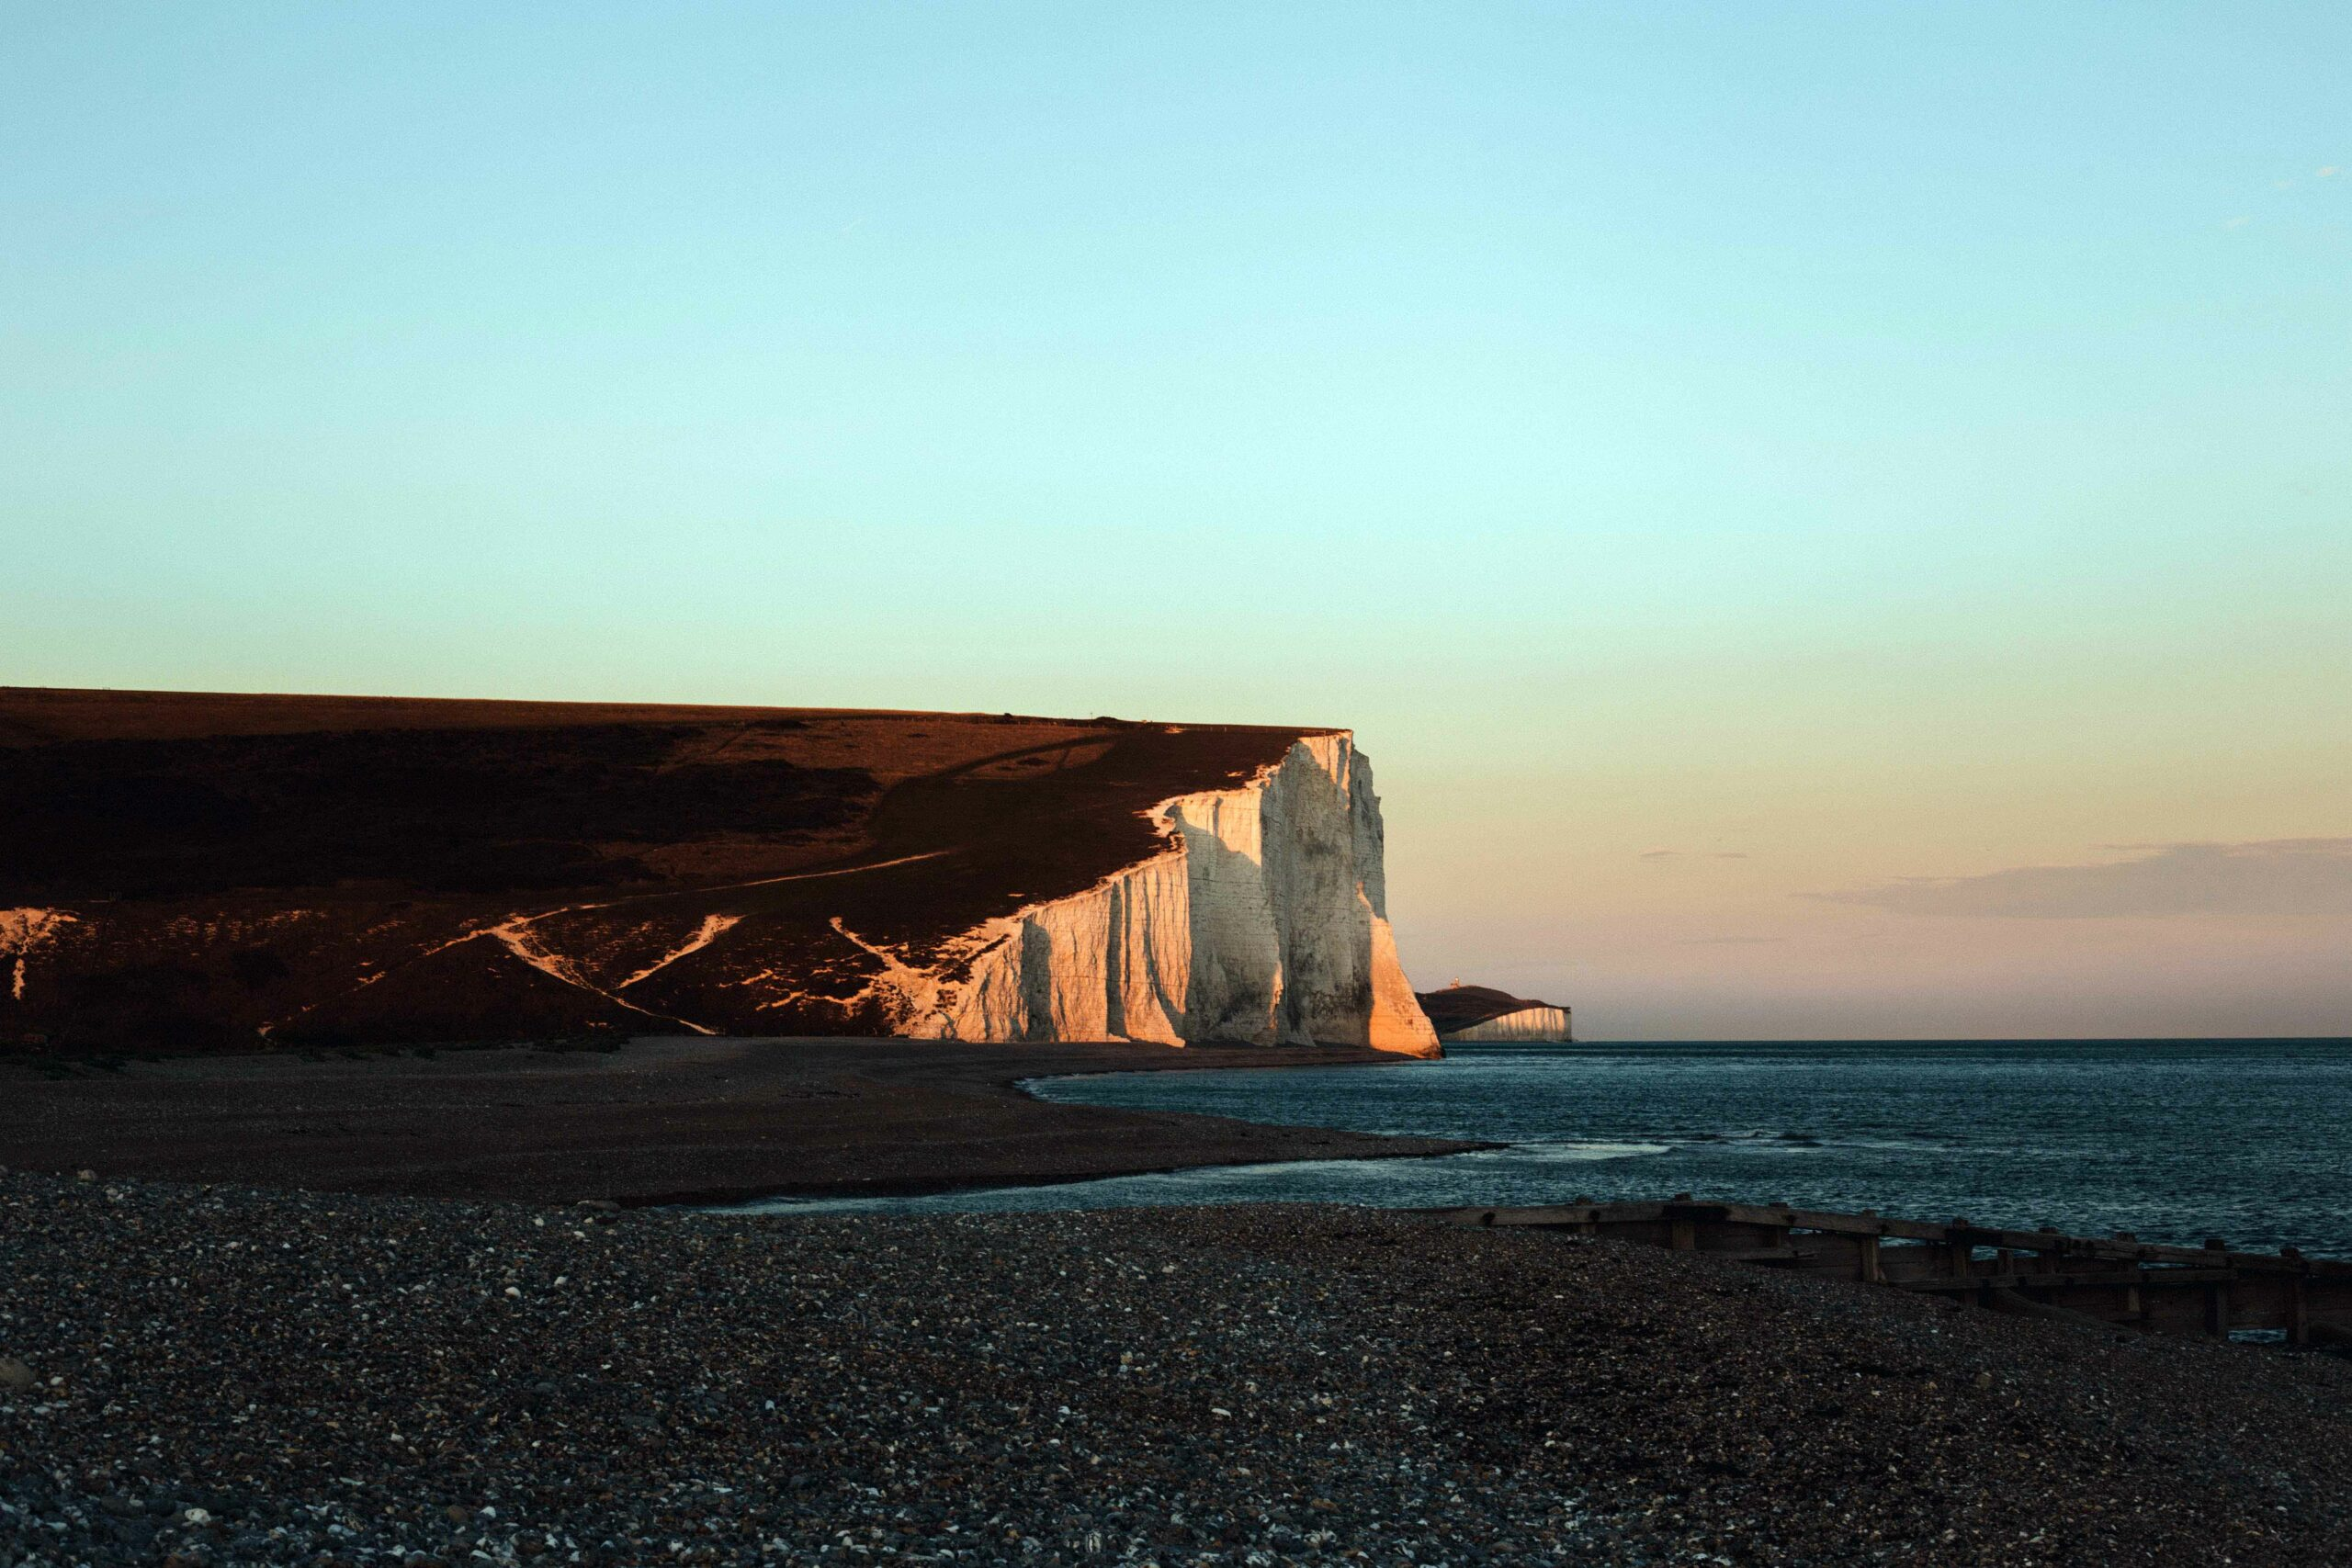 White Cliffs, Green Fields And Failed Invasions: Welcome To Kent, Gateway To Britain